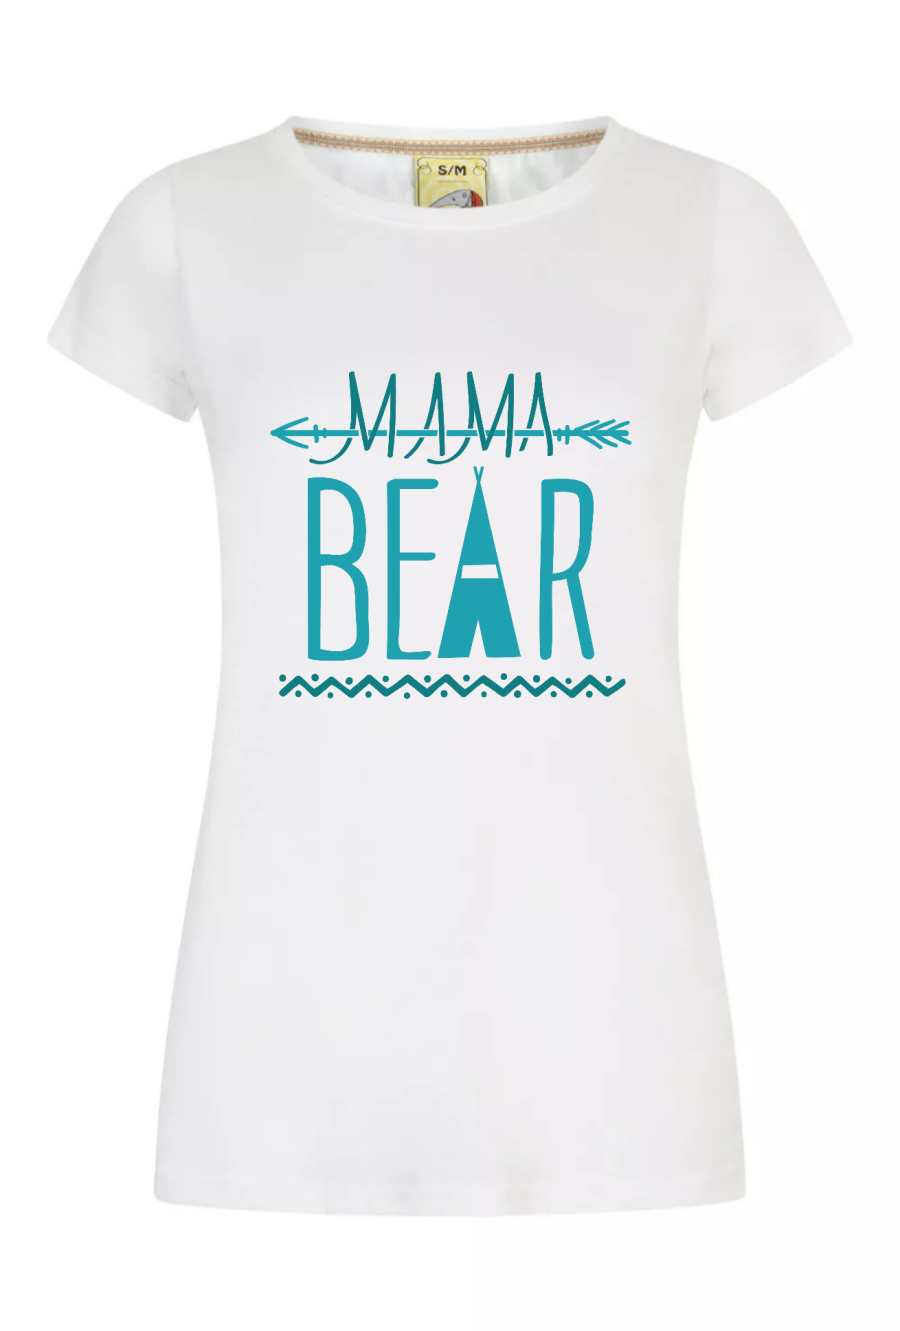 Mama Bear White and Blue Womens t shirt Mothers day Gift